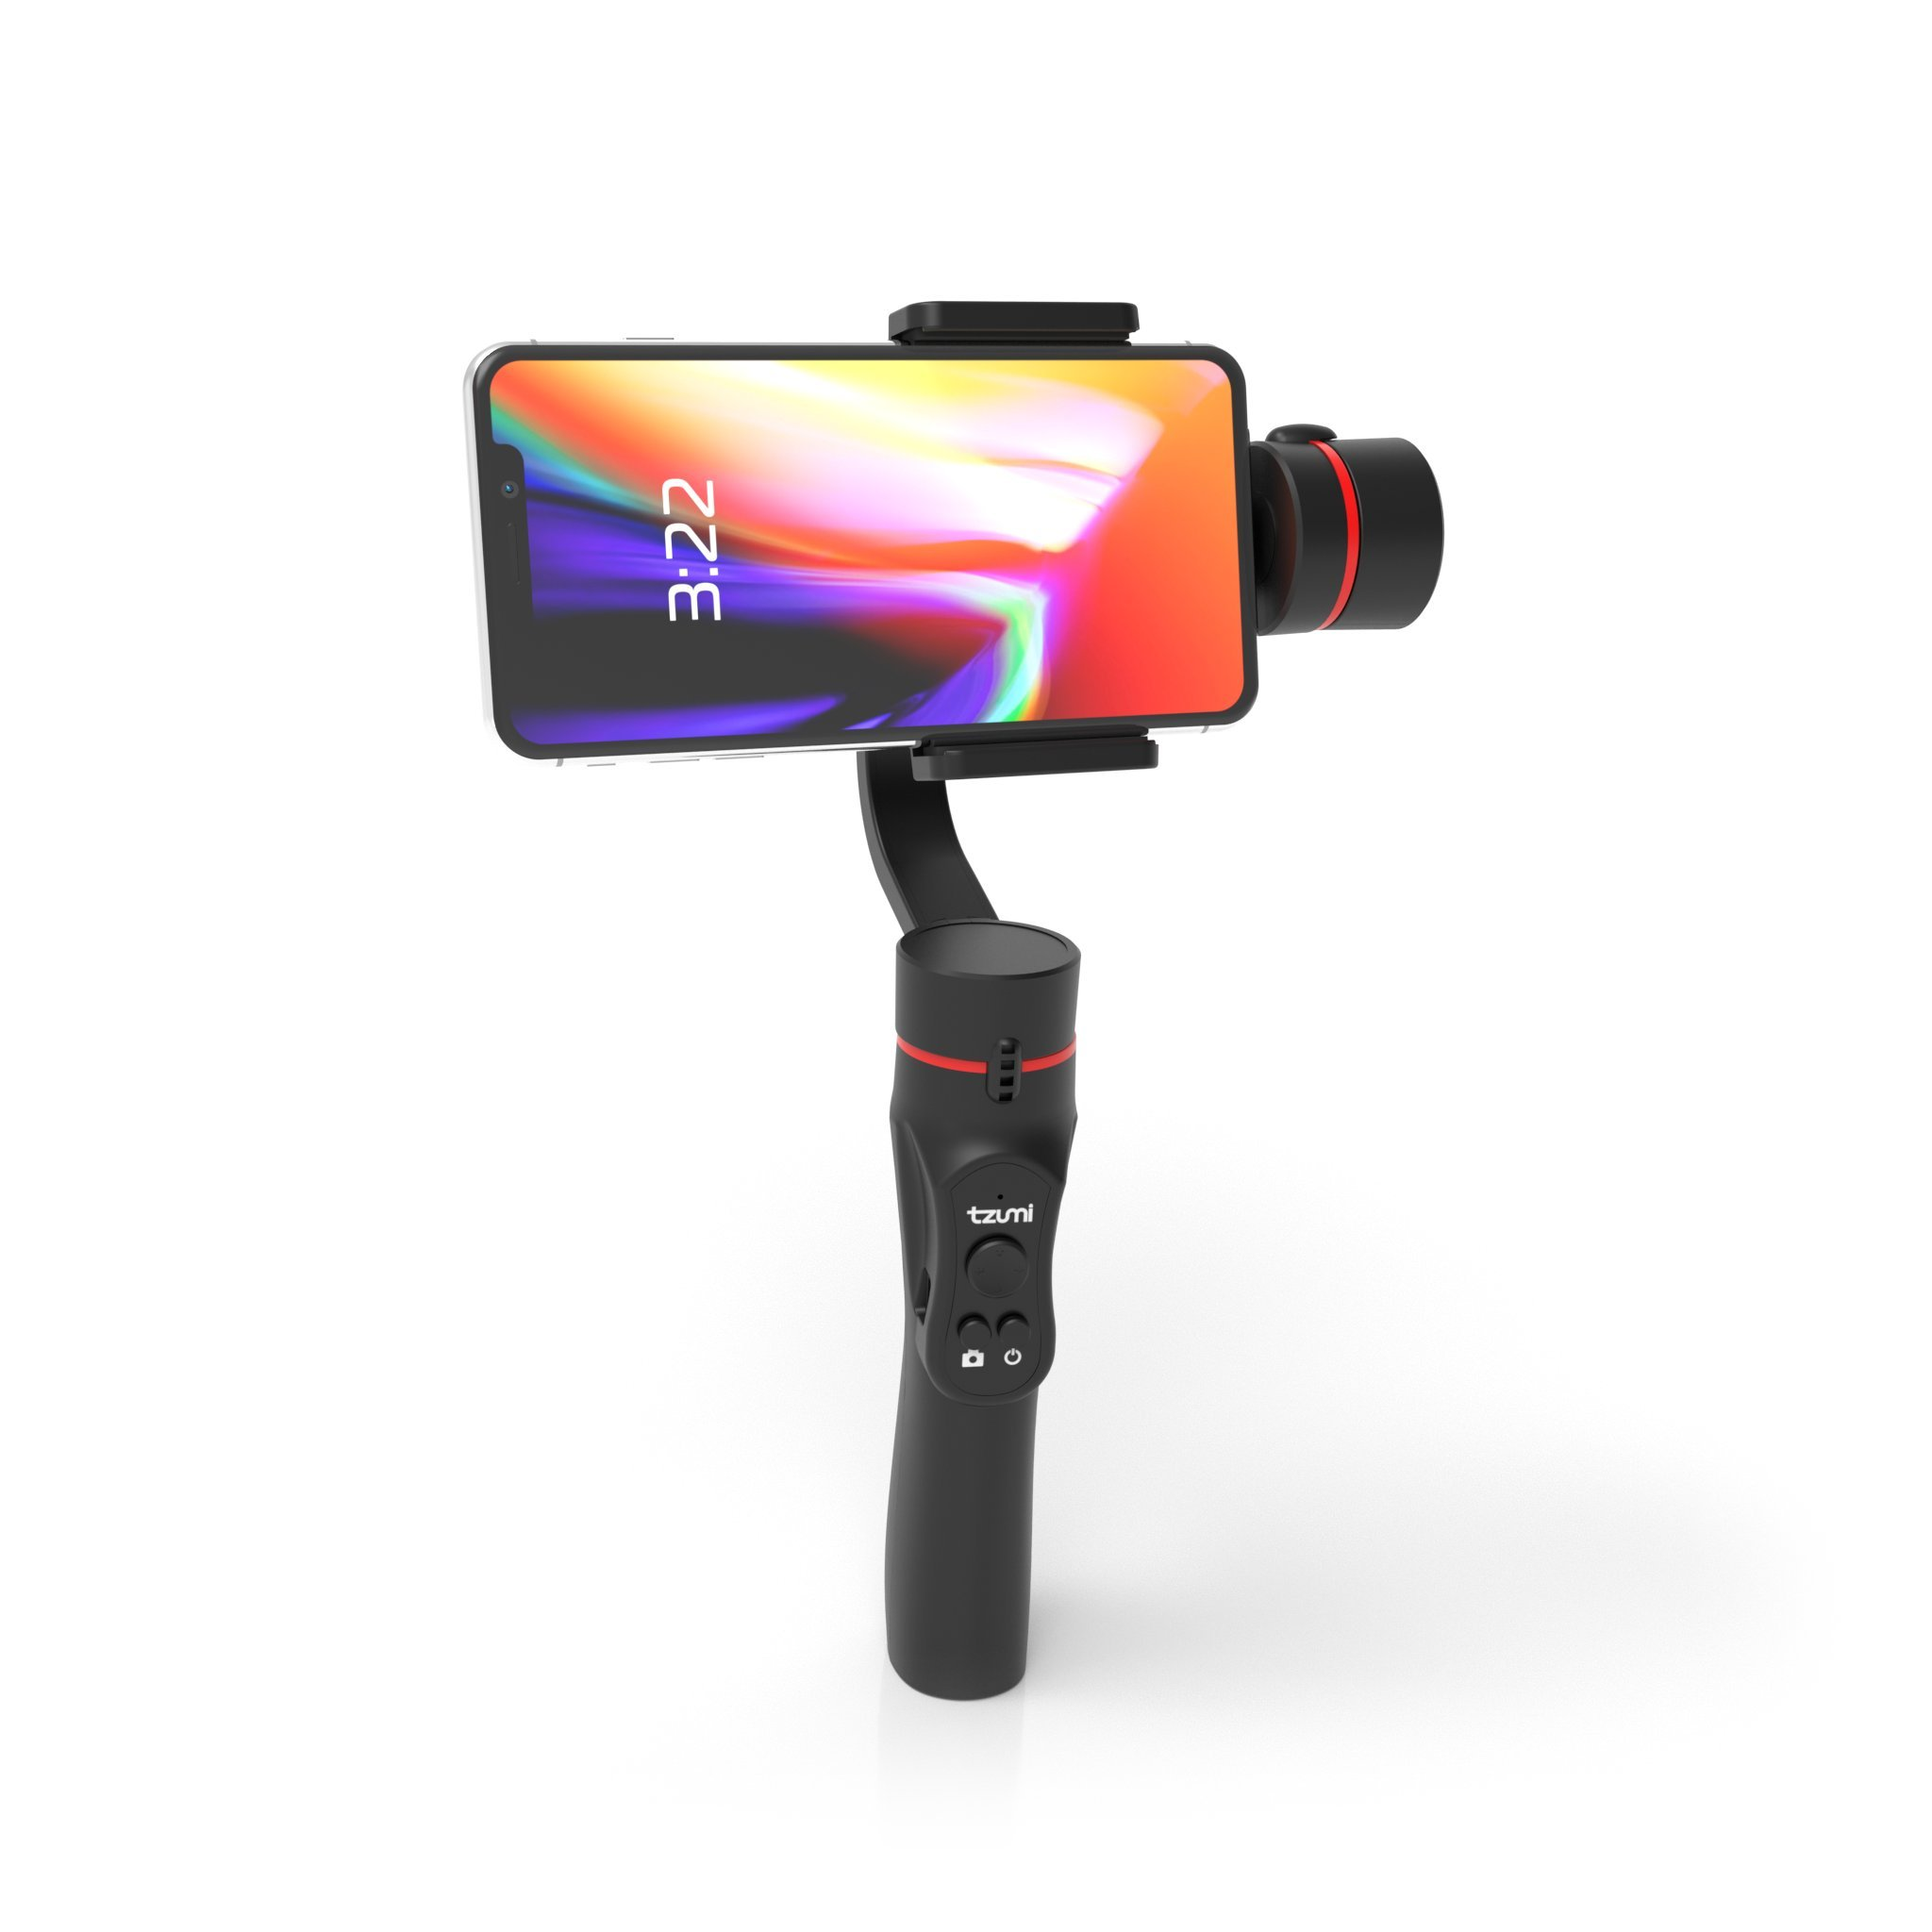 Tzumi SteadyGo Smartphone Stabilizing Gimbal – Motorized Rechargeable 3-Axis Handheld Gimbal For Smooth, Steady Digital Photography and Advanced Video Filming Techniques by Tzumi